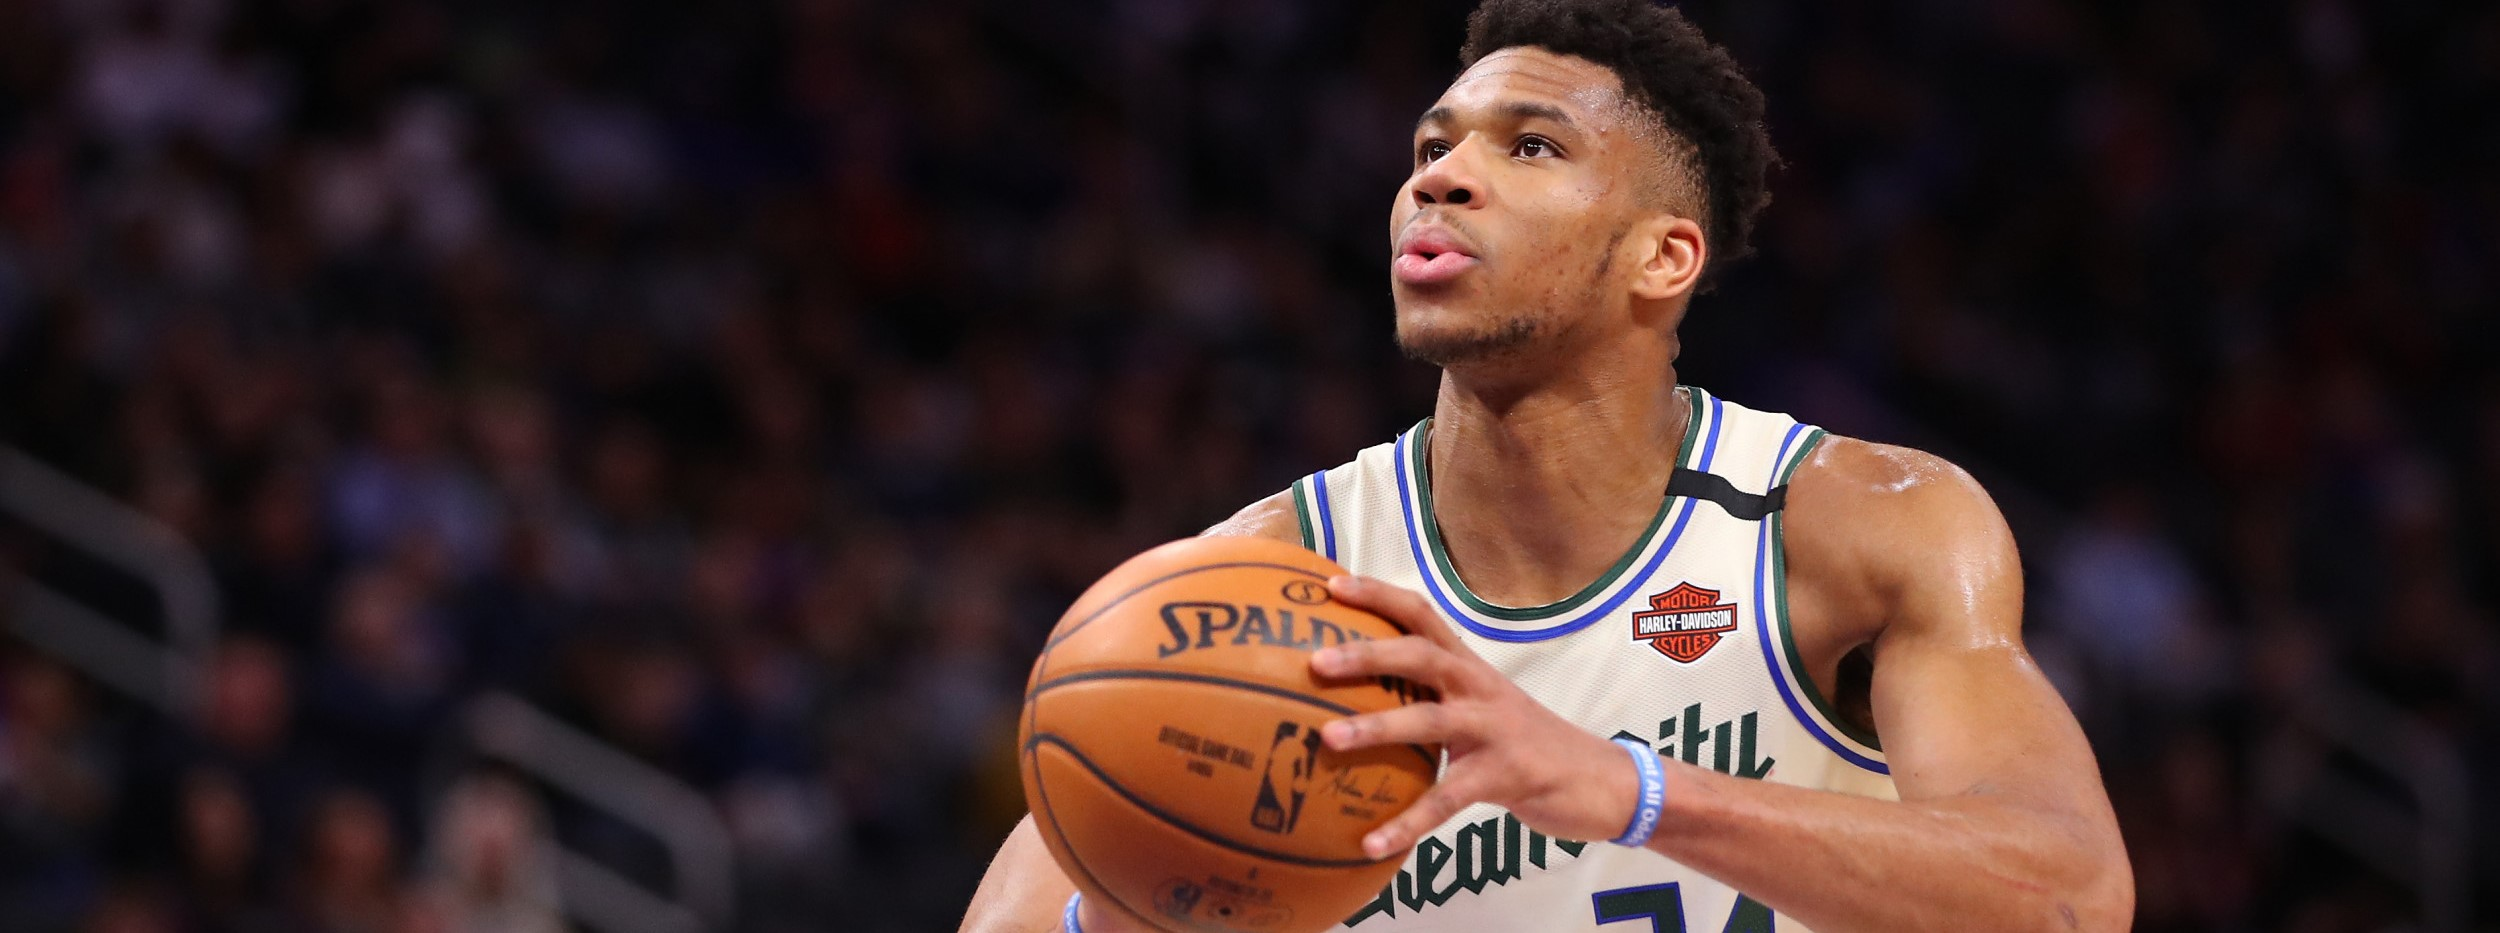 Milwaukee Bucks vs Los Angeles Lakers Basketball Live Sports Betting Odds, NBA Free Predictions